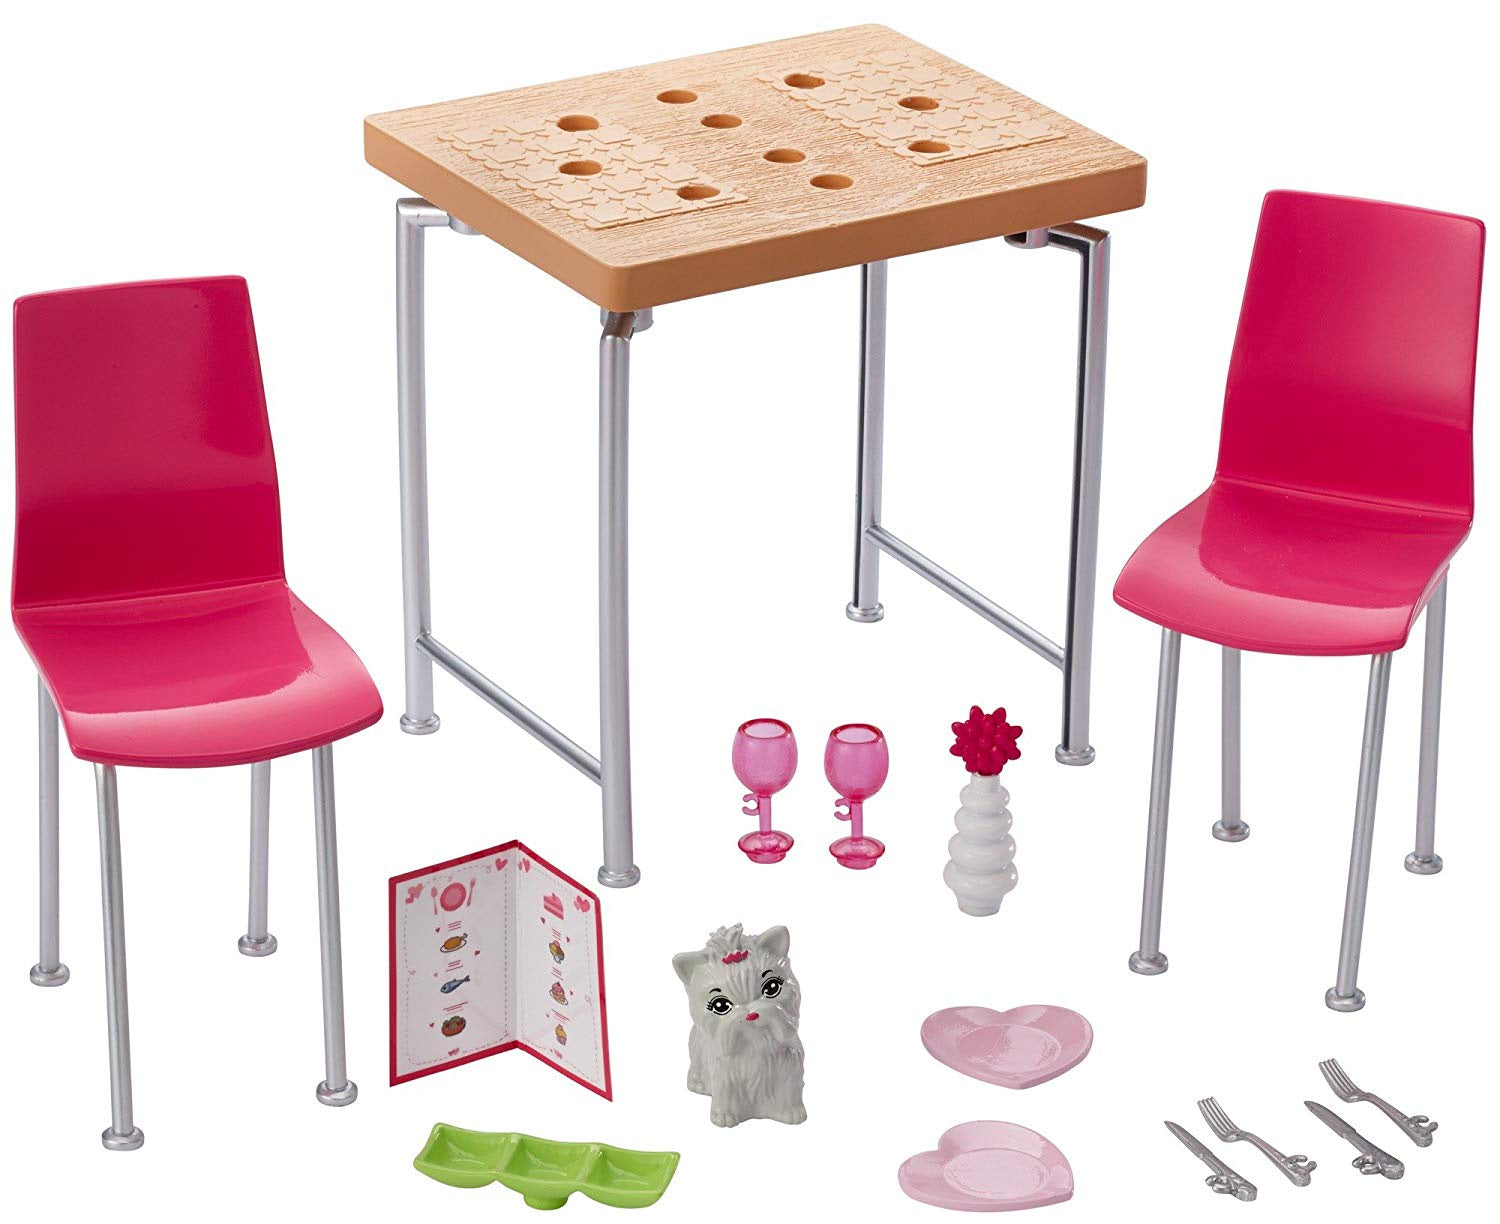 Barbie Furniture And Accessory Set Date Night